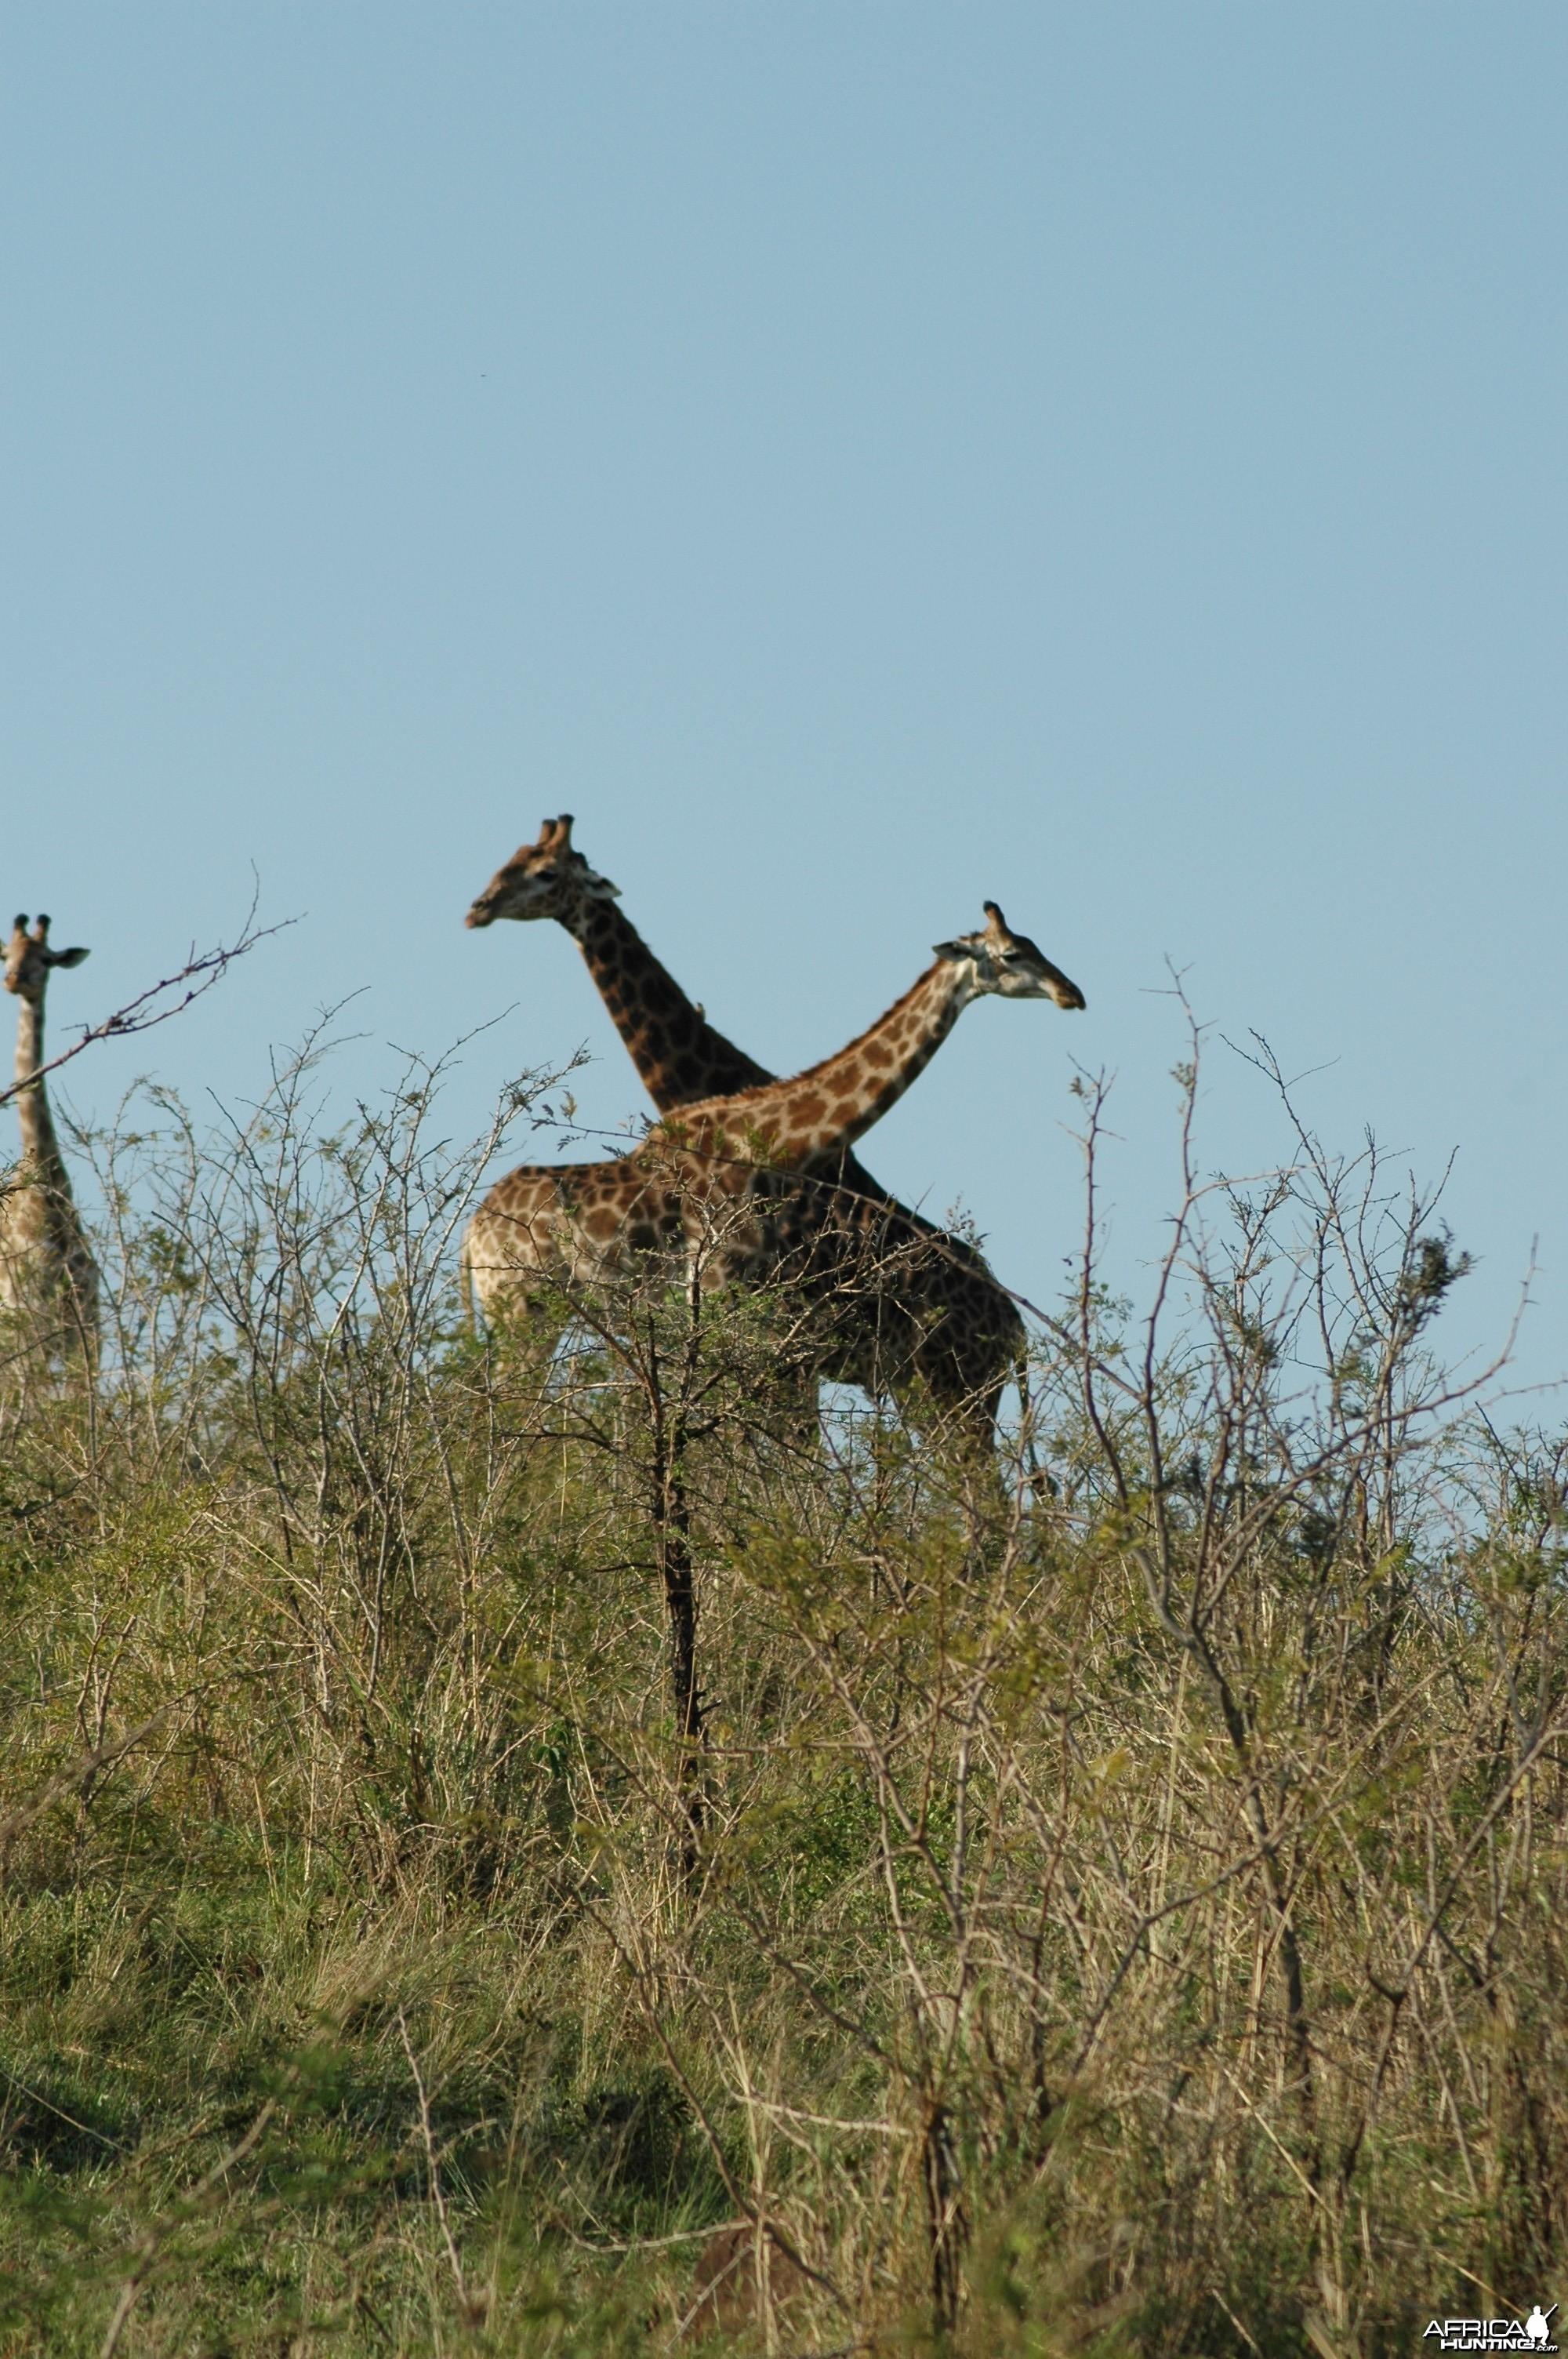 Giraffes in South Africa